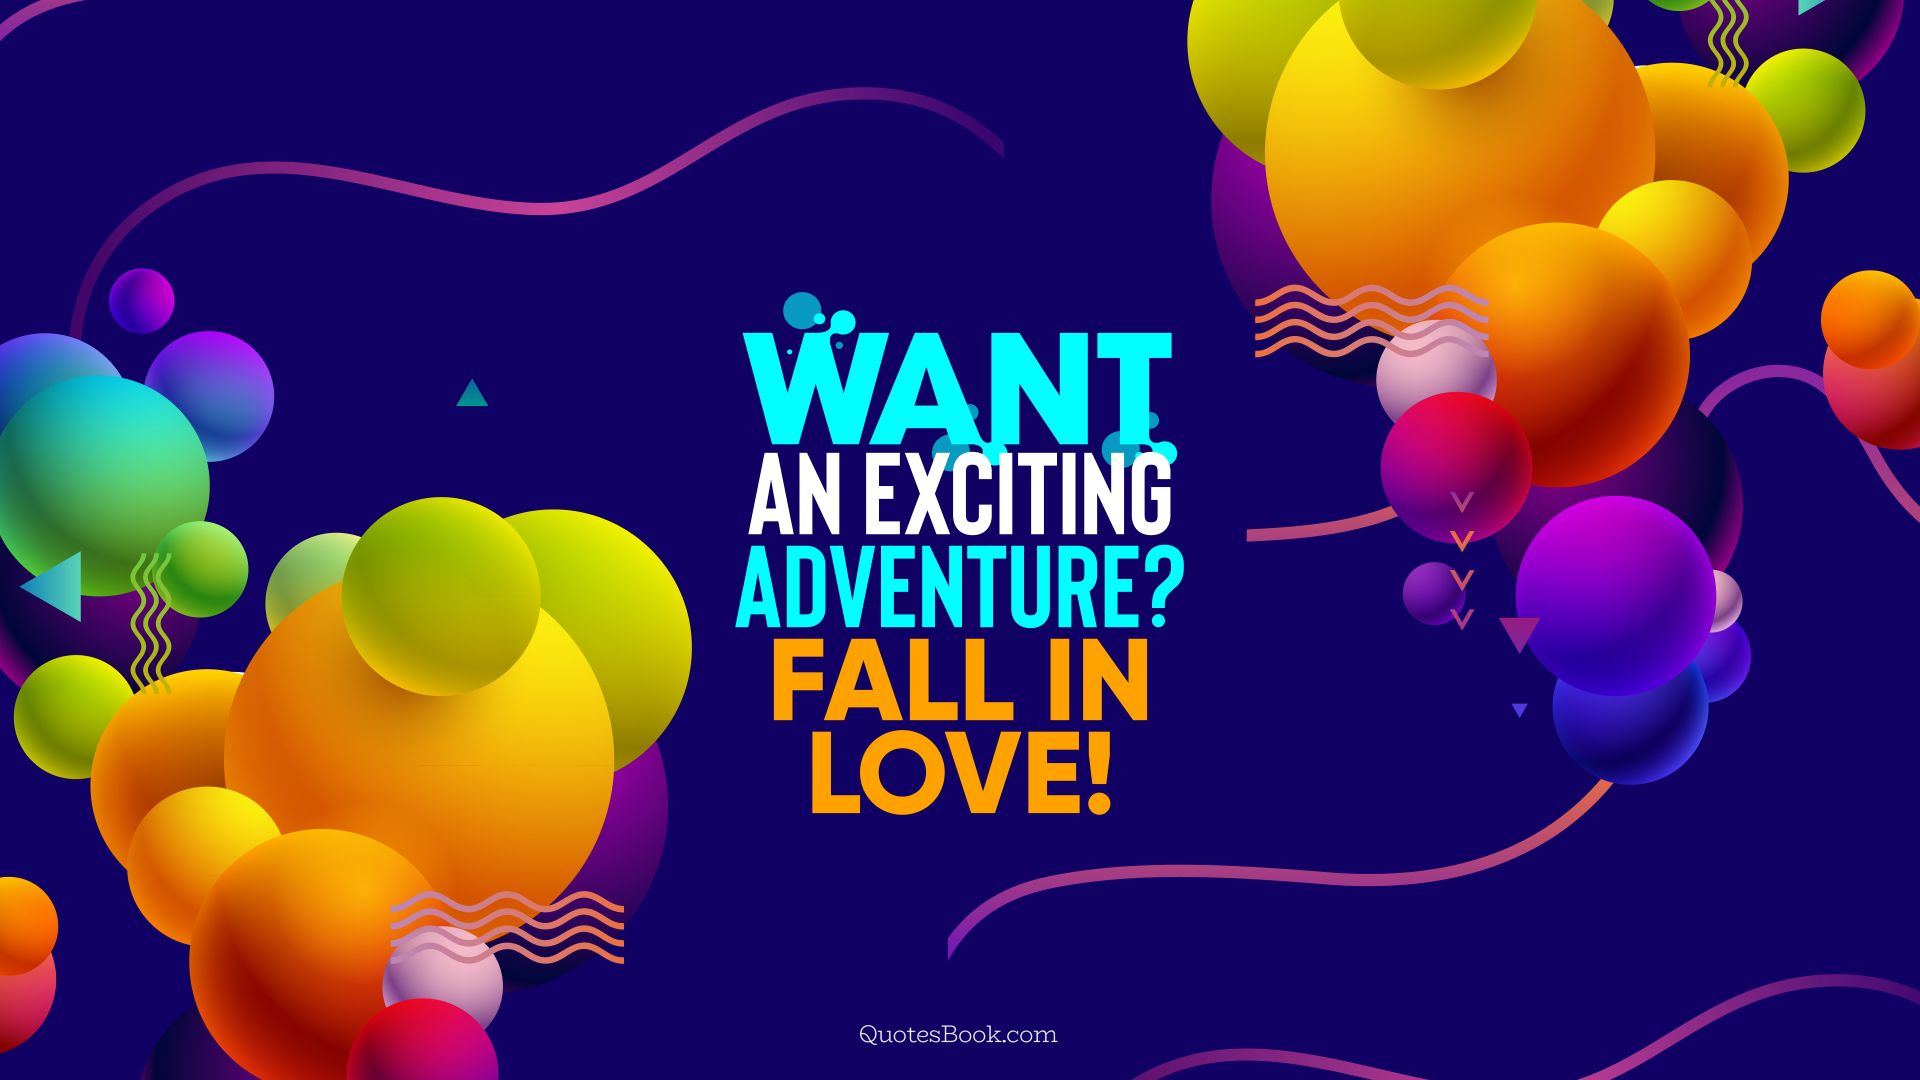 Want an exciting adventure? Fall in love!. - Quote by QuotesBook